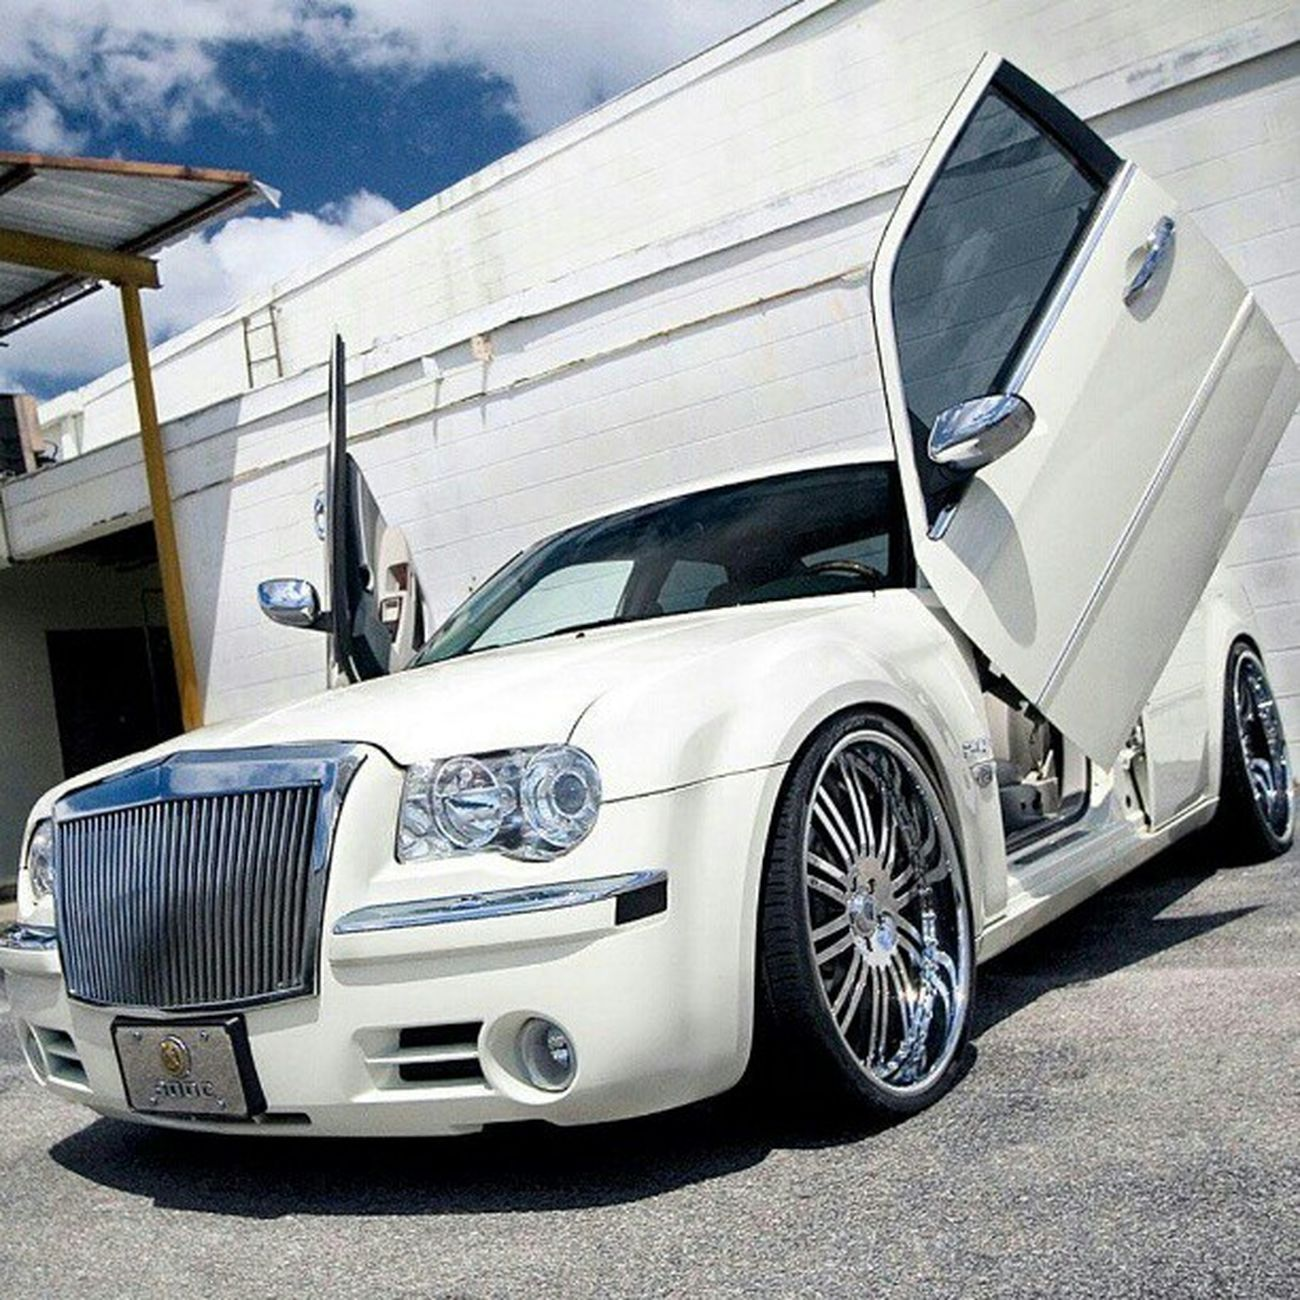 Chrysler Chrysler300 Car Cars white